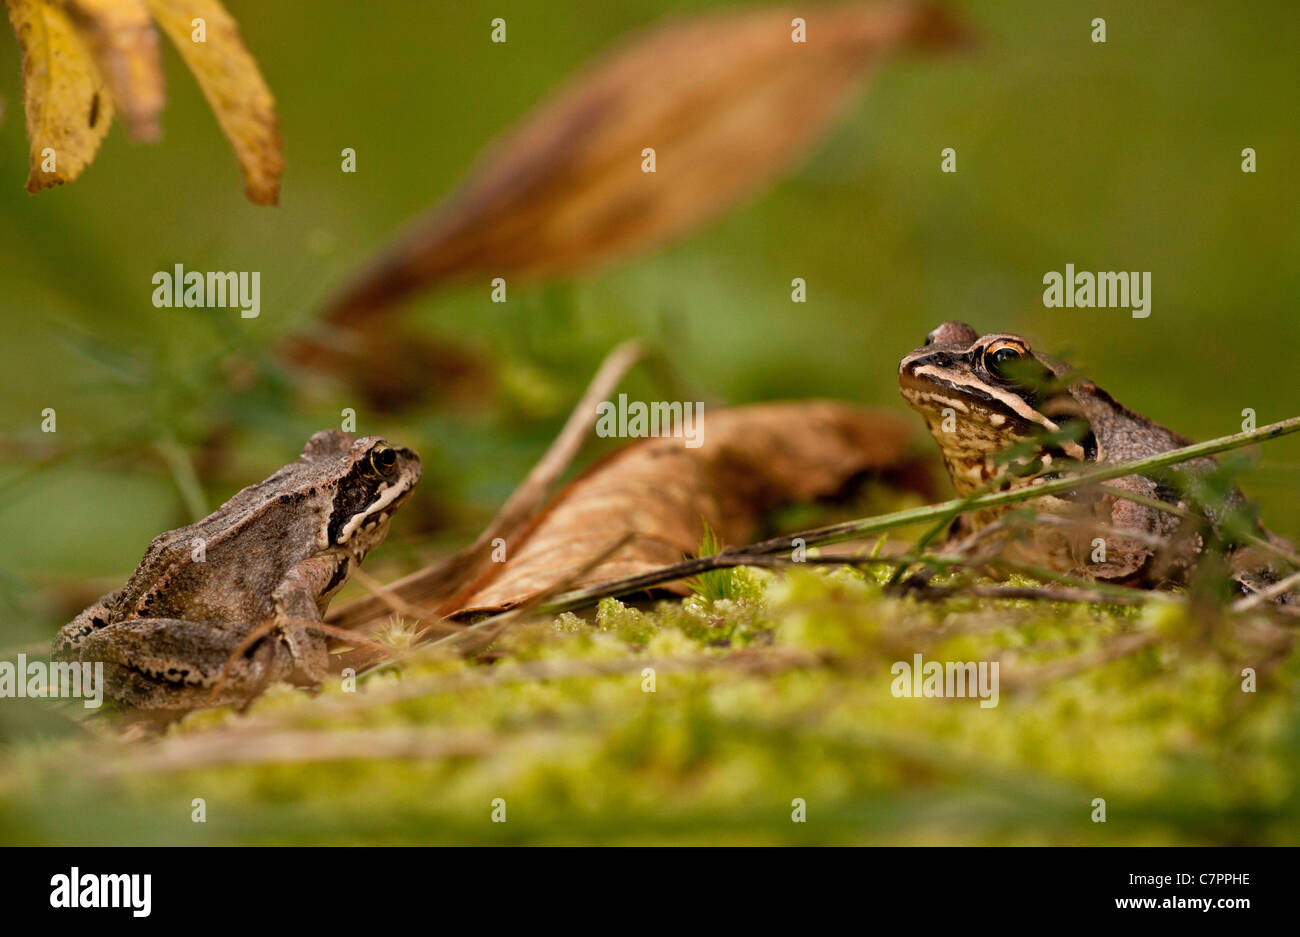 Common frogs, Rana temporaria, adults in autumn. - Stock Image